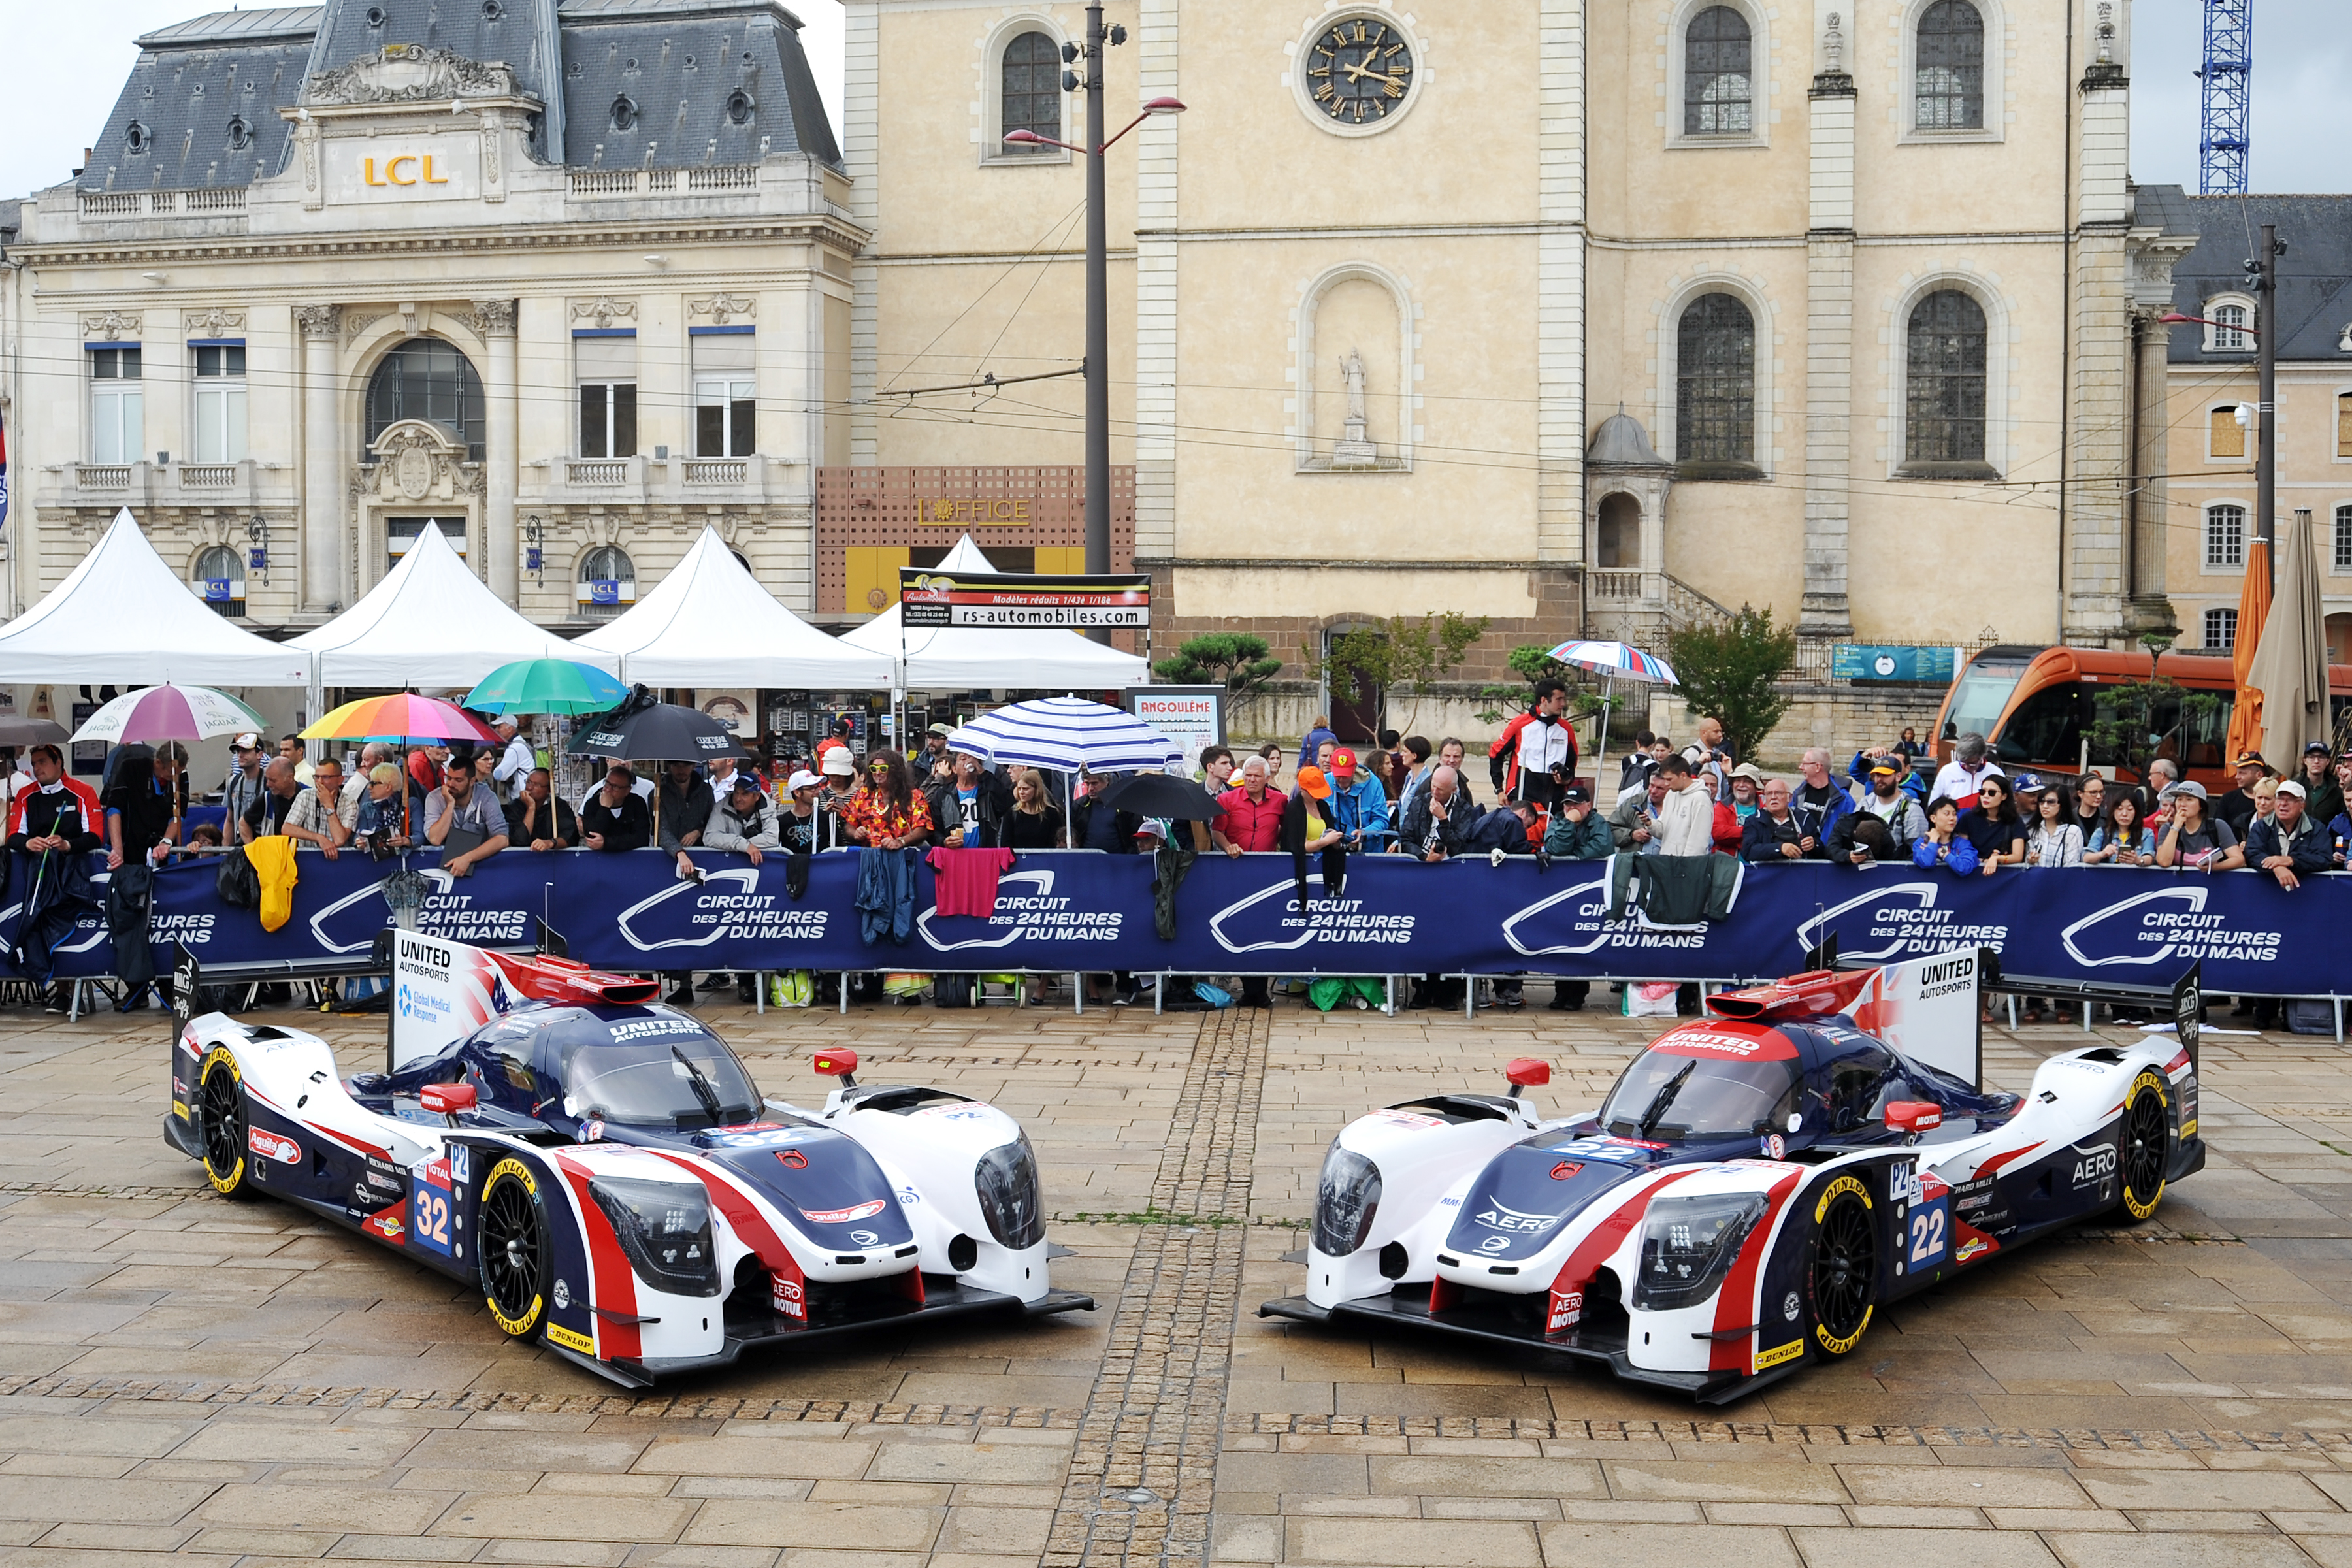 file united autosports le mans 2018 scrutineering 04 42074756994 jpg wikimedia commons. Black Bedroom Furniture Sets. Home Design Ideas